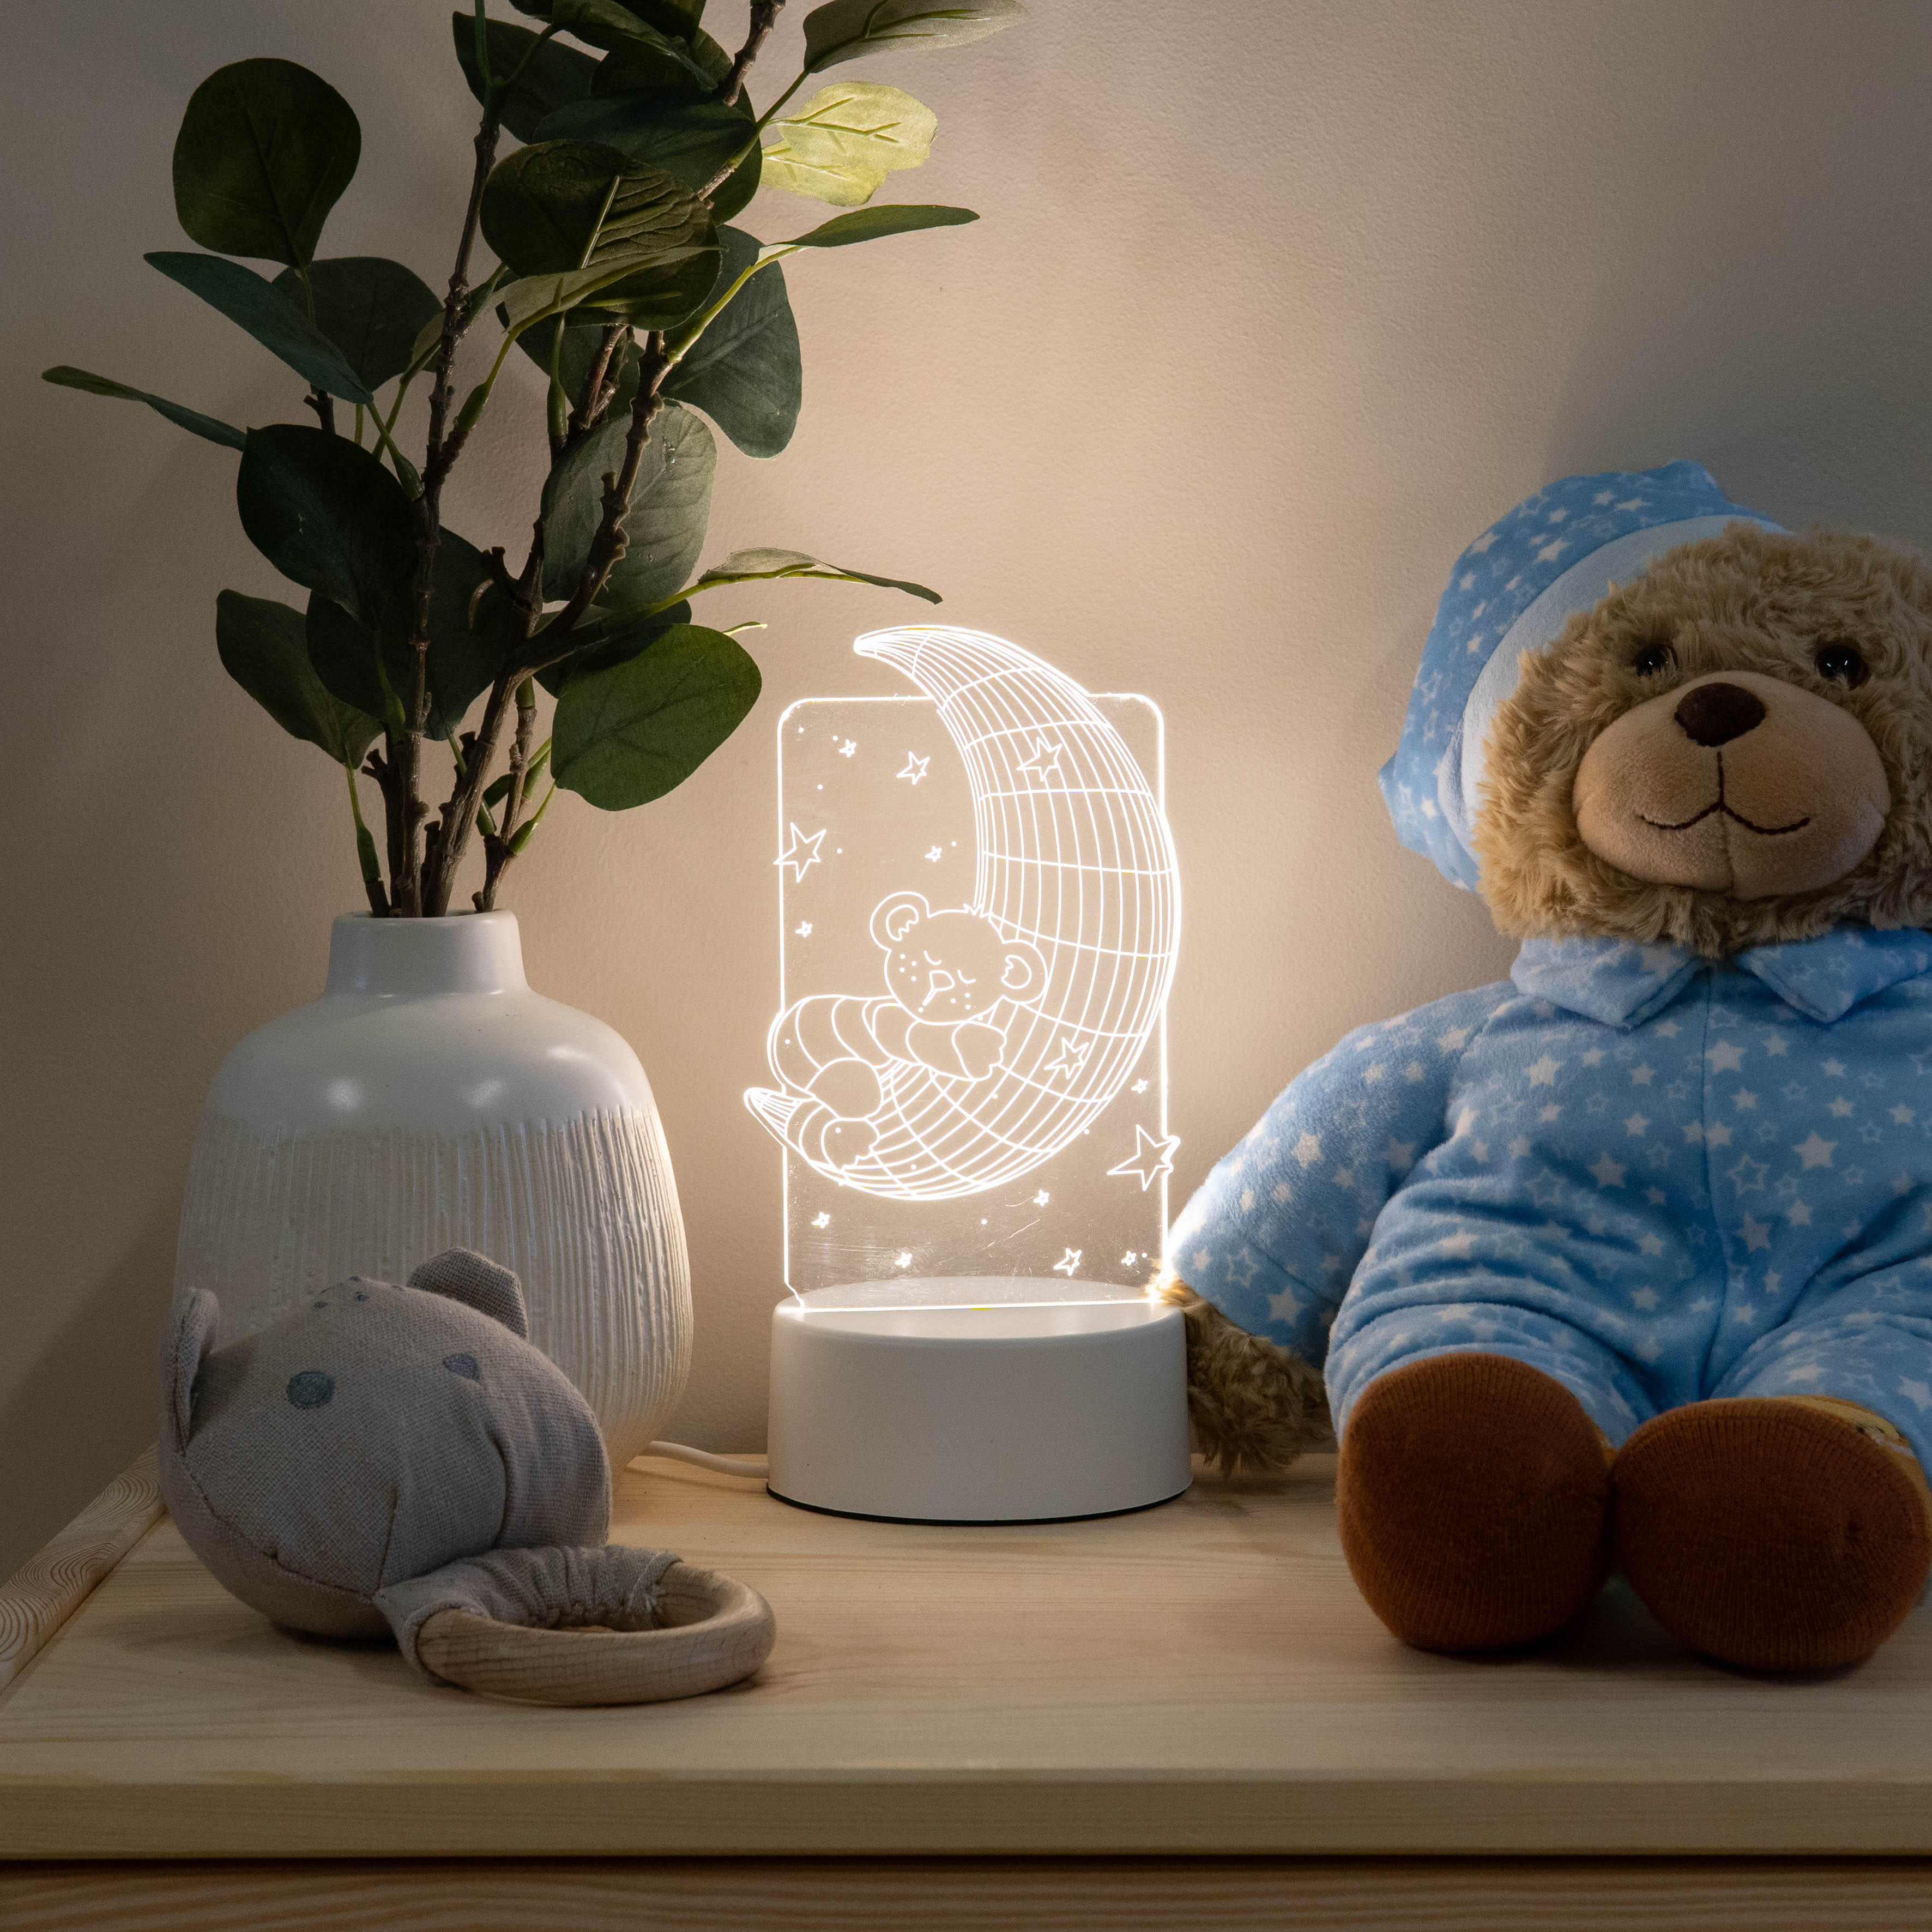 sleepy-bear-night-light-2